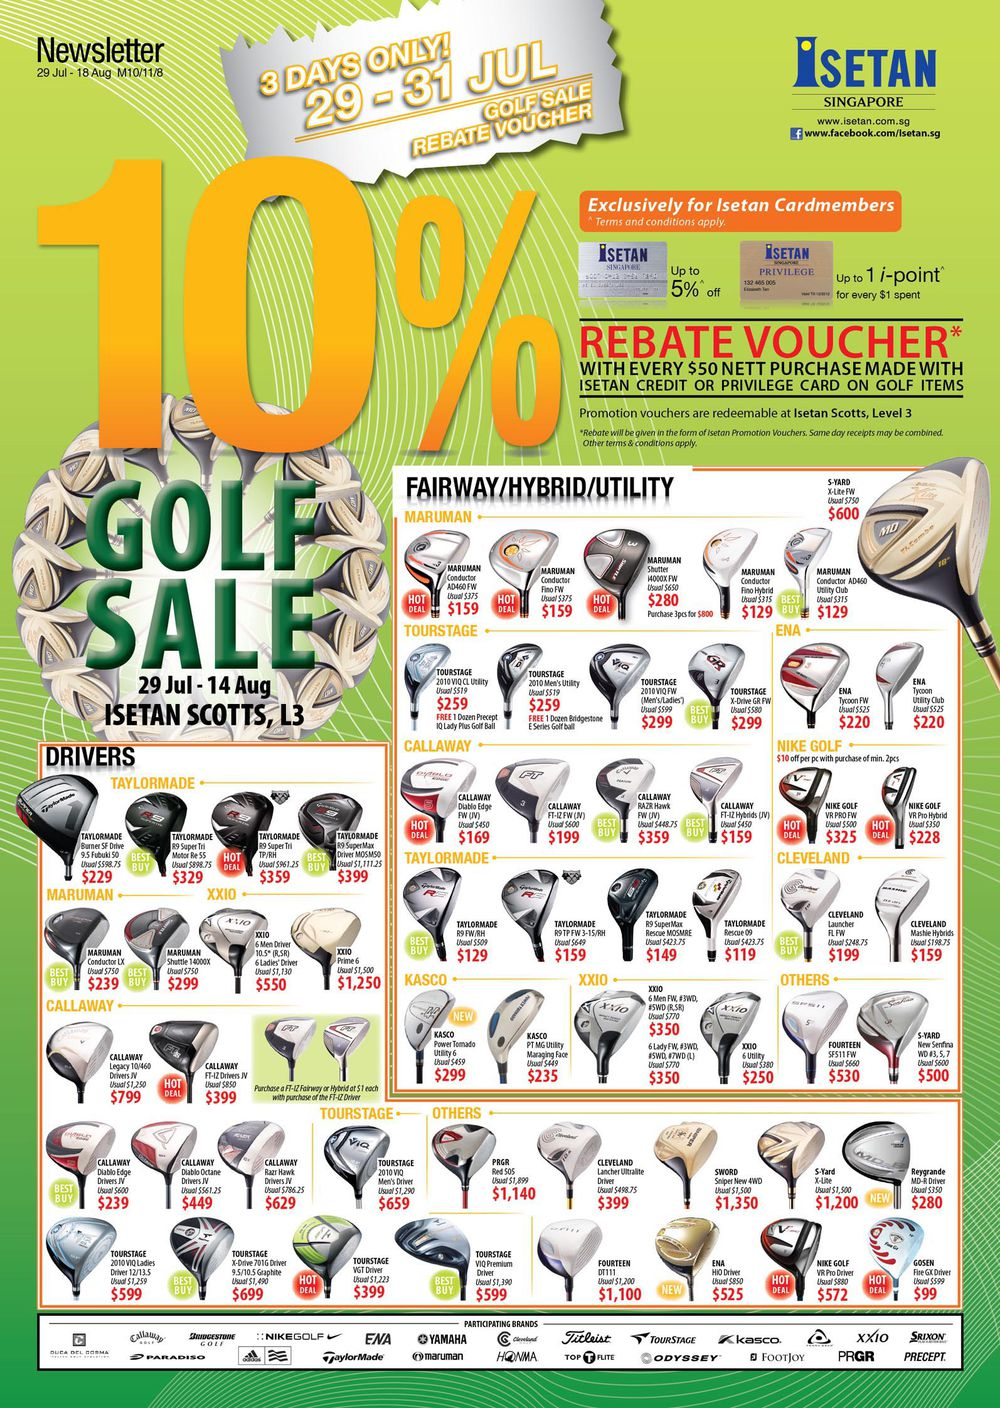 Isetan Scotts 3-Day Golf Sale